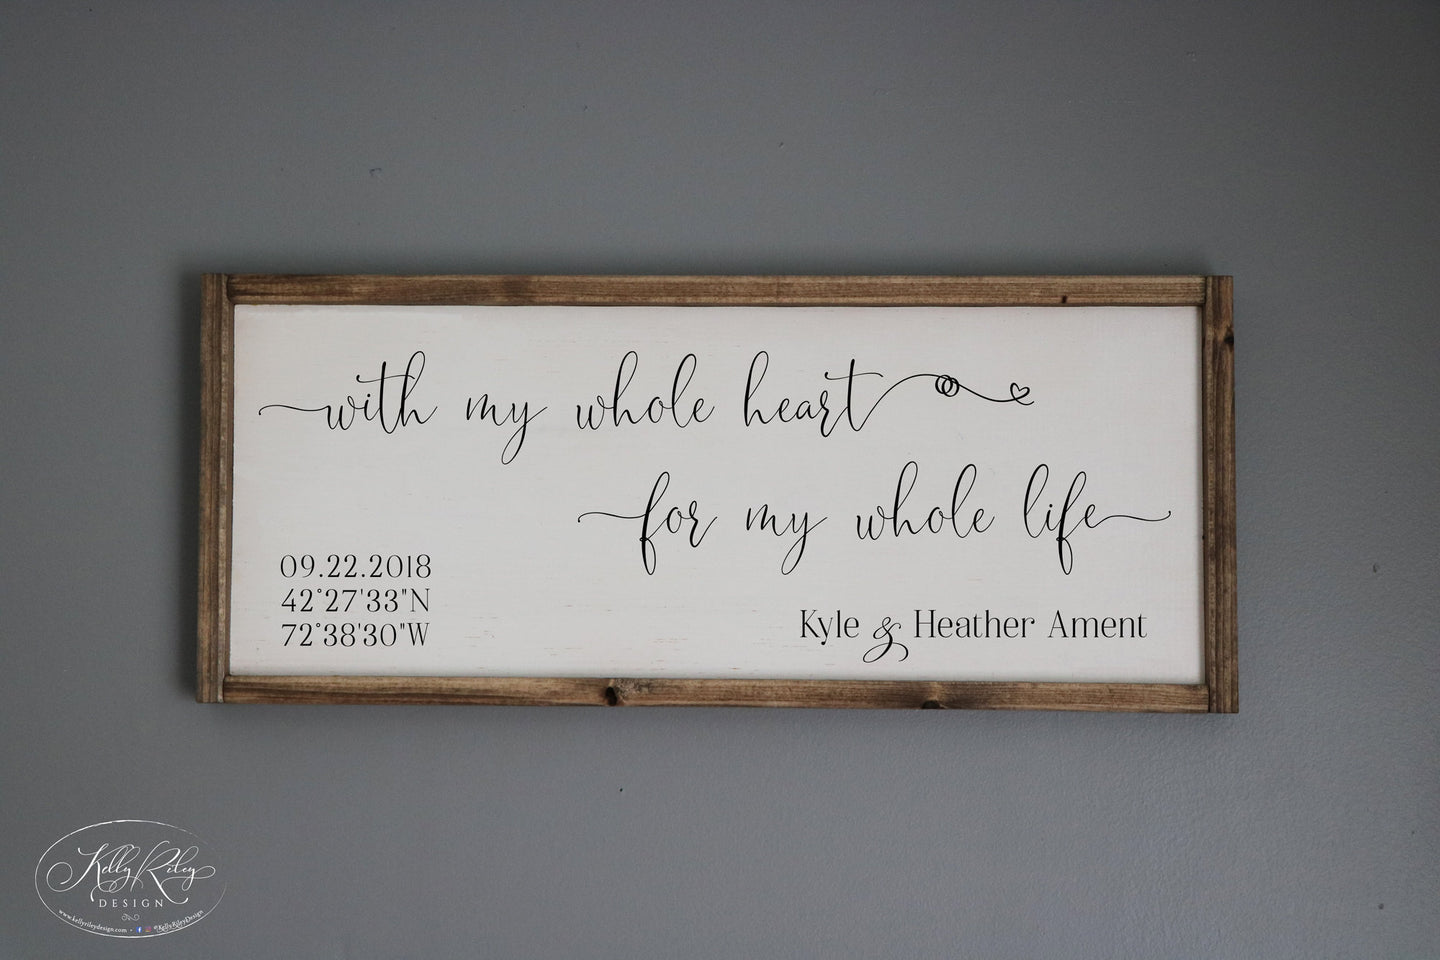 With my whole heart for my whole life | Personalized Wedding Sign